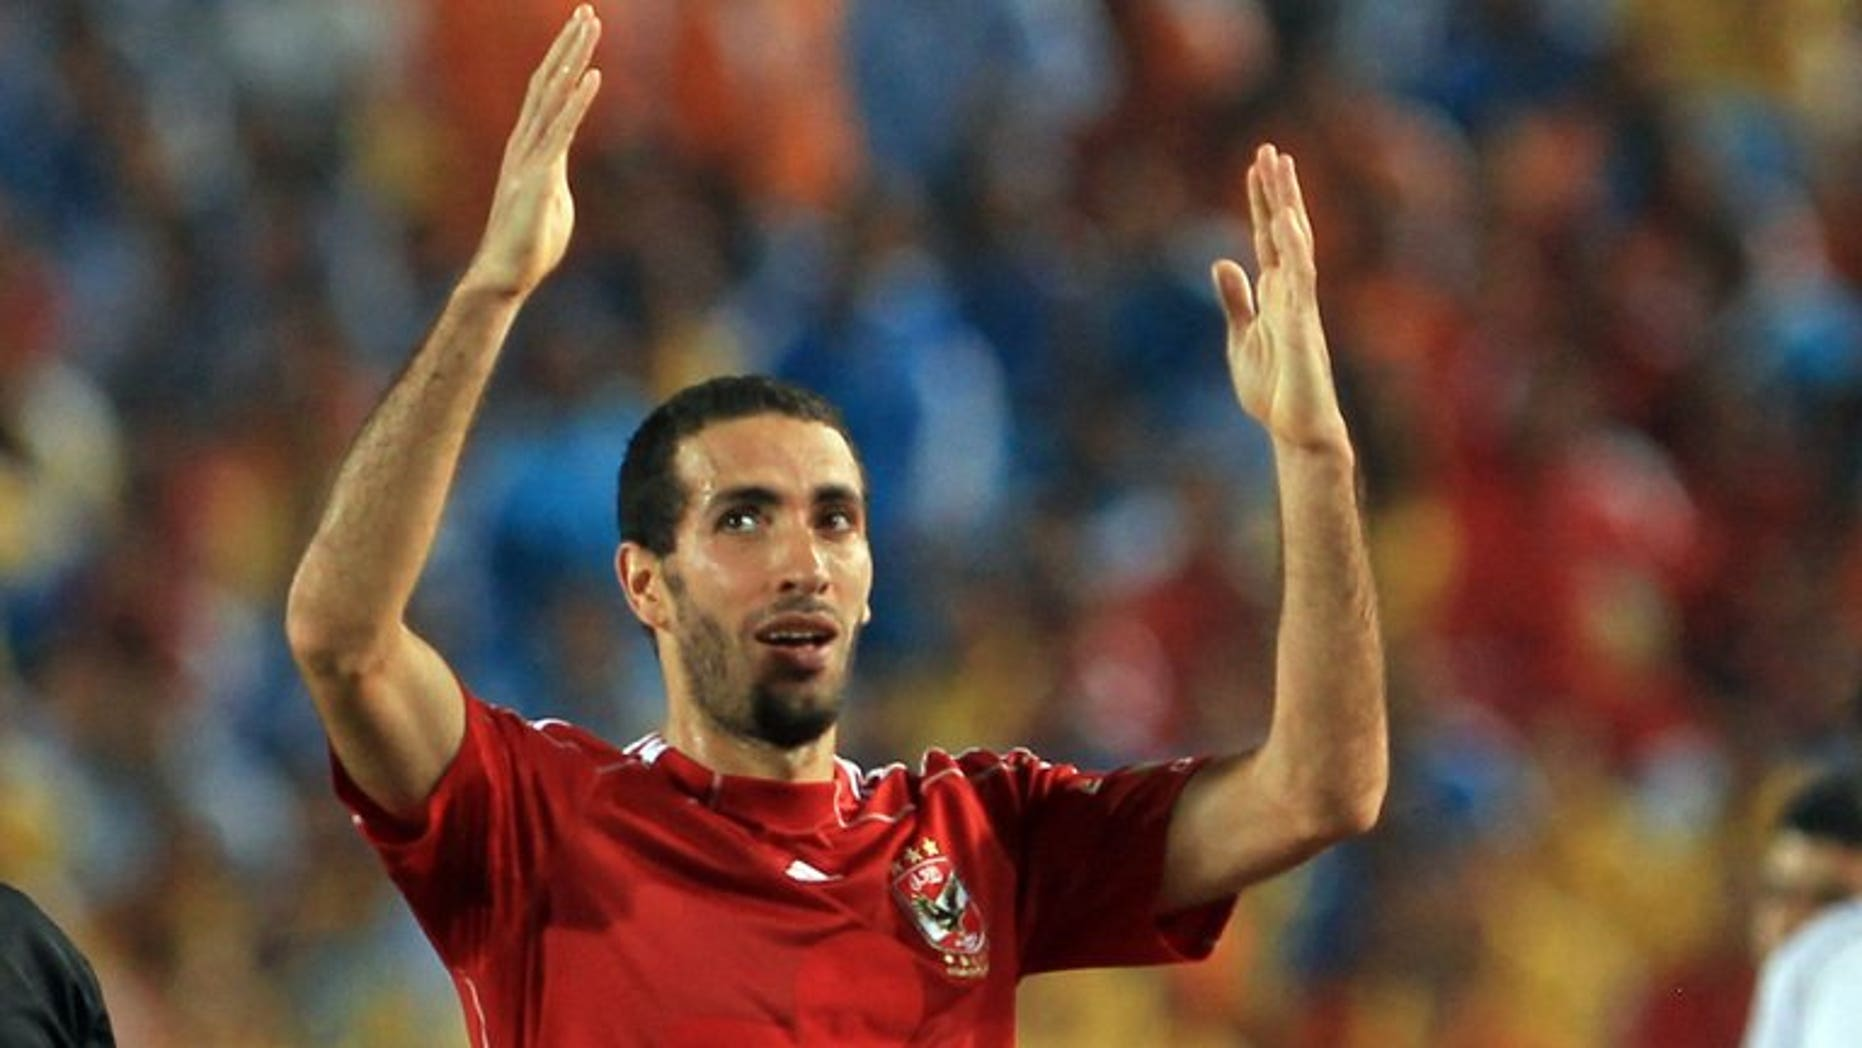 Egyptian player Mohammed Abou Trika of al-Ahly after scoring the winning goal against Haras al-Hodud club during their Super Cup match in Cairo July 25, 2010. Star midfielders Mohamed Abou Trika of Al-Ahly and Mahmoud Abdel Razak of Zamalek return Wednesday for a potentially explosive CAF Champions League Egyptian derby.